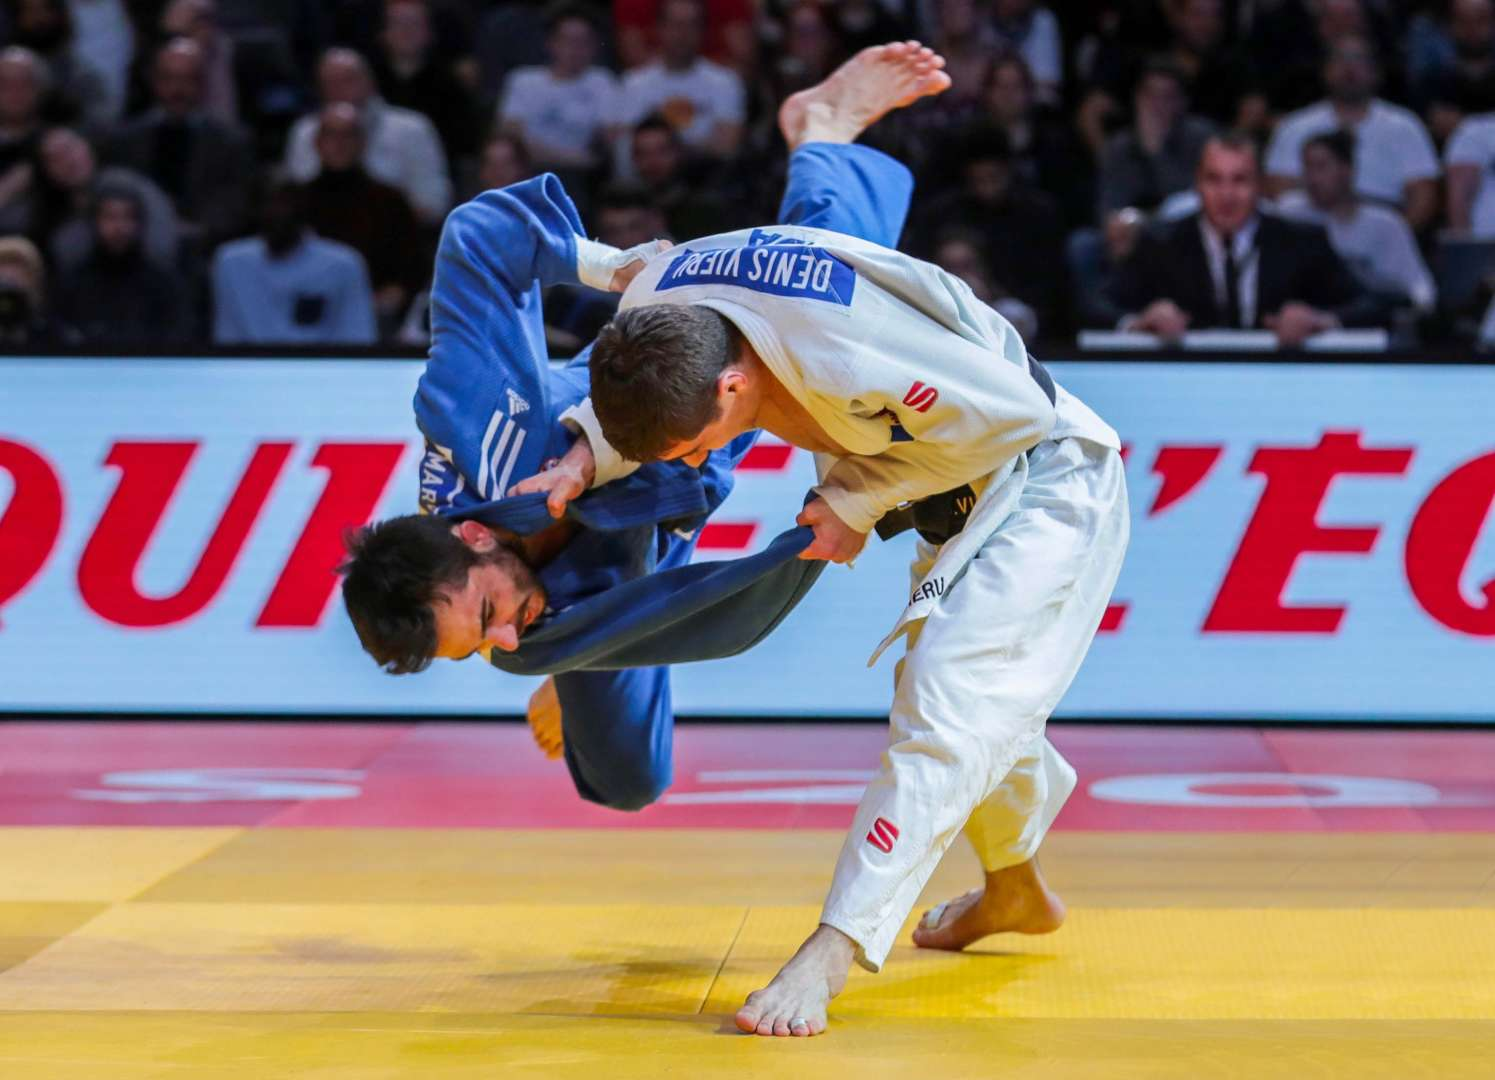 It was beautiful: seeing, and appreciating, judo for the